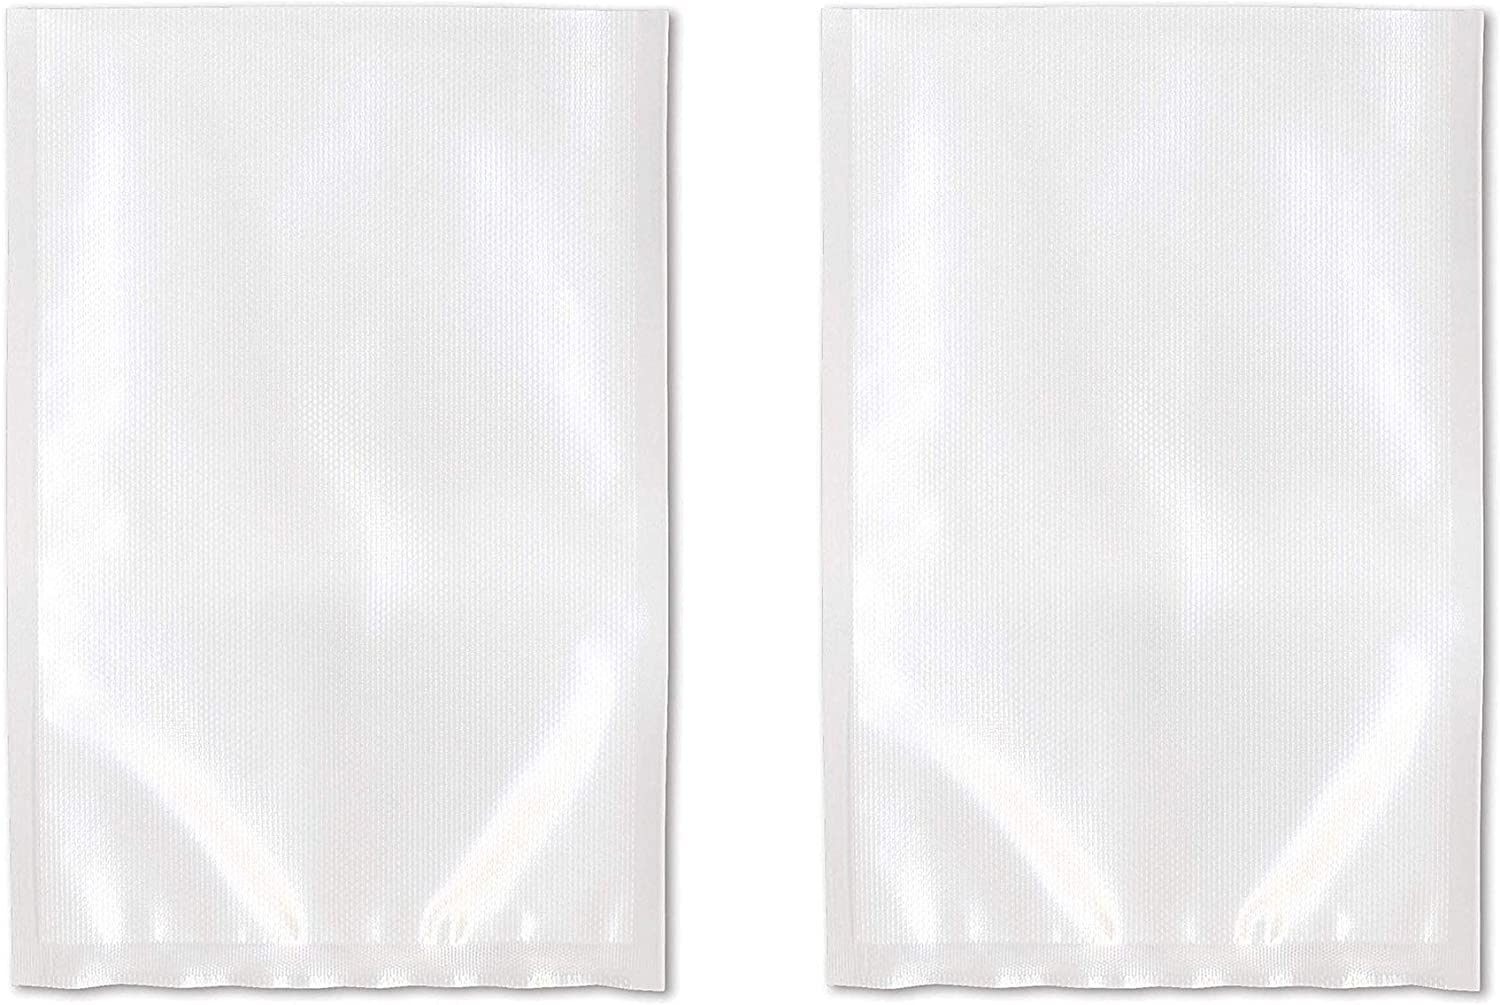 Weston 8-by-12-Inch Vacuum-Sealer Food Bags, 100 Count 30-0101-W , Set of 2